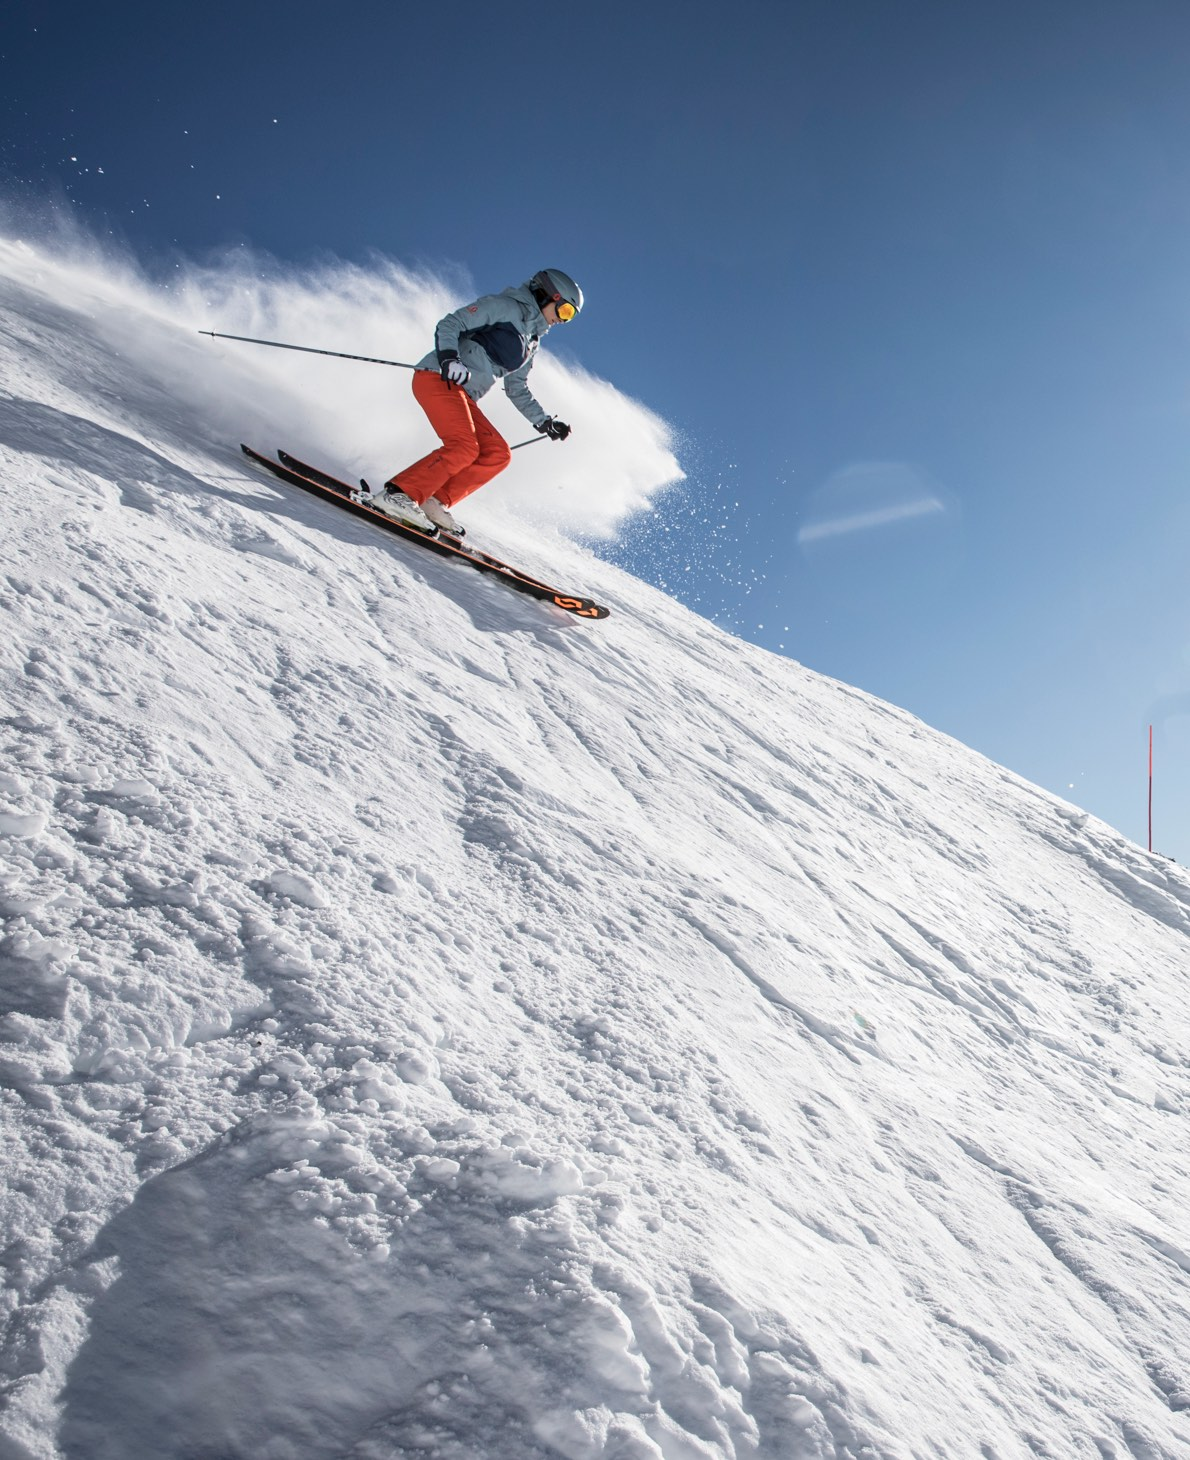 skiing down, in the resort